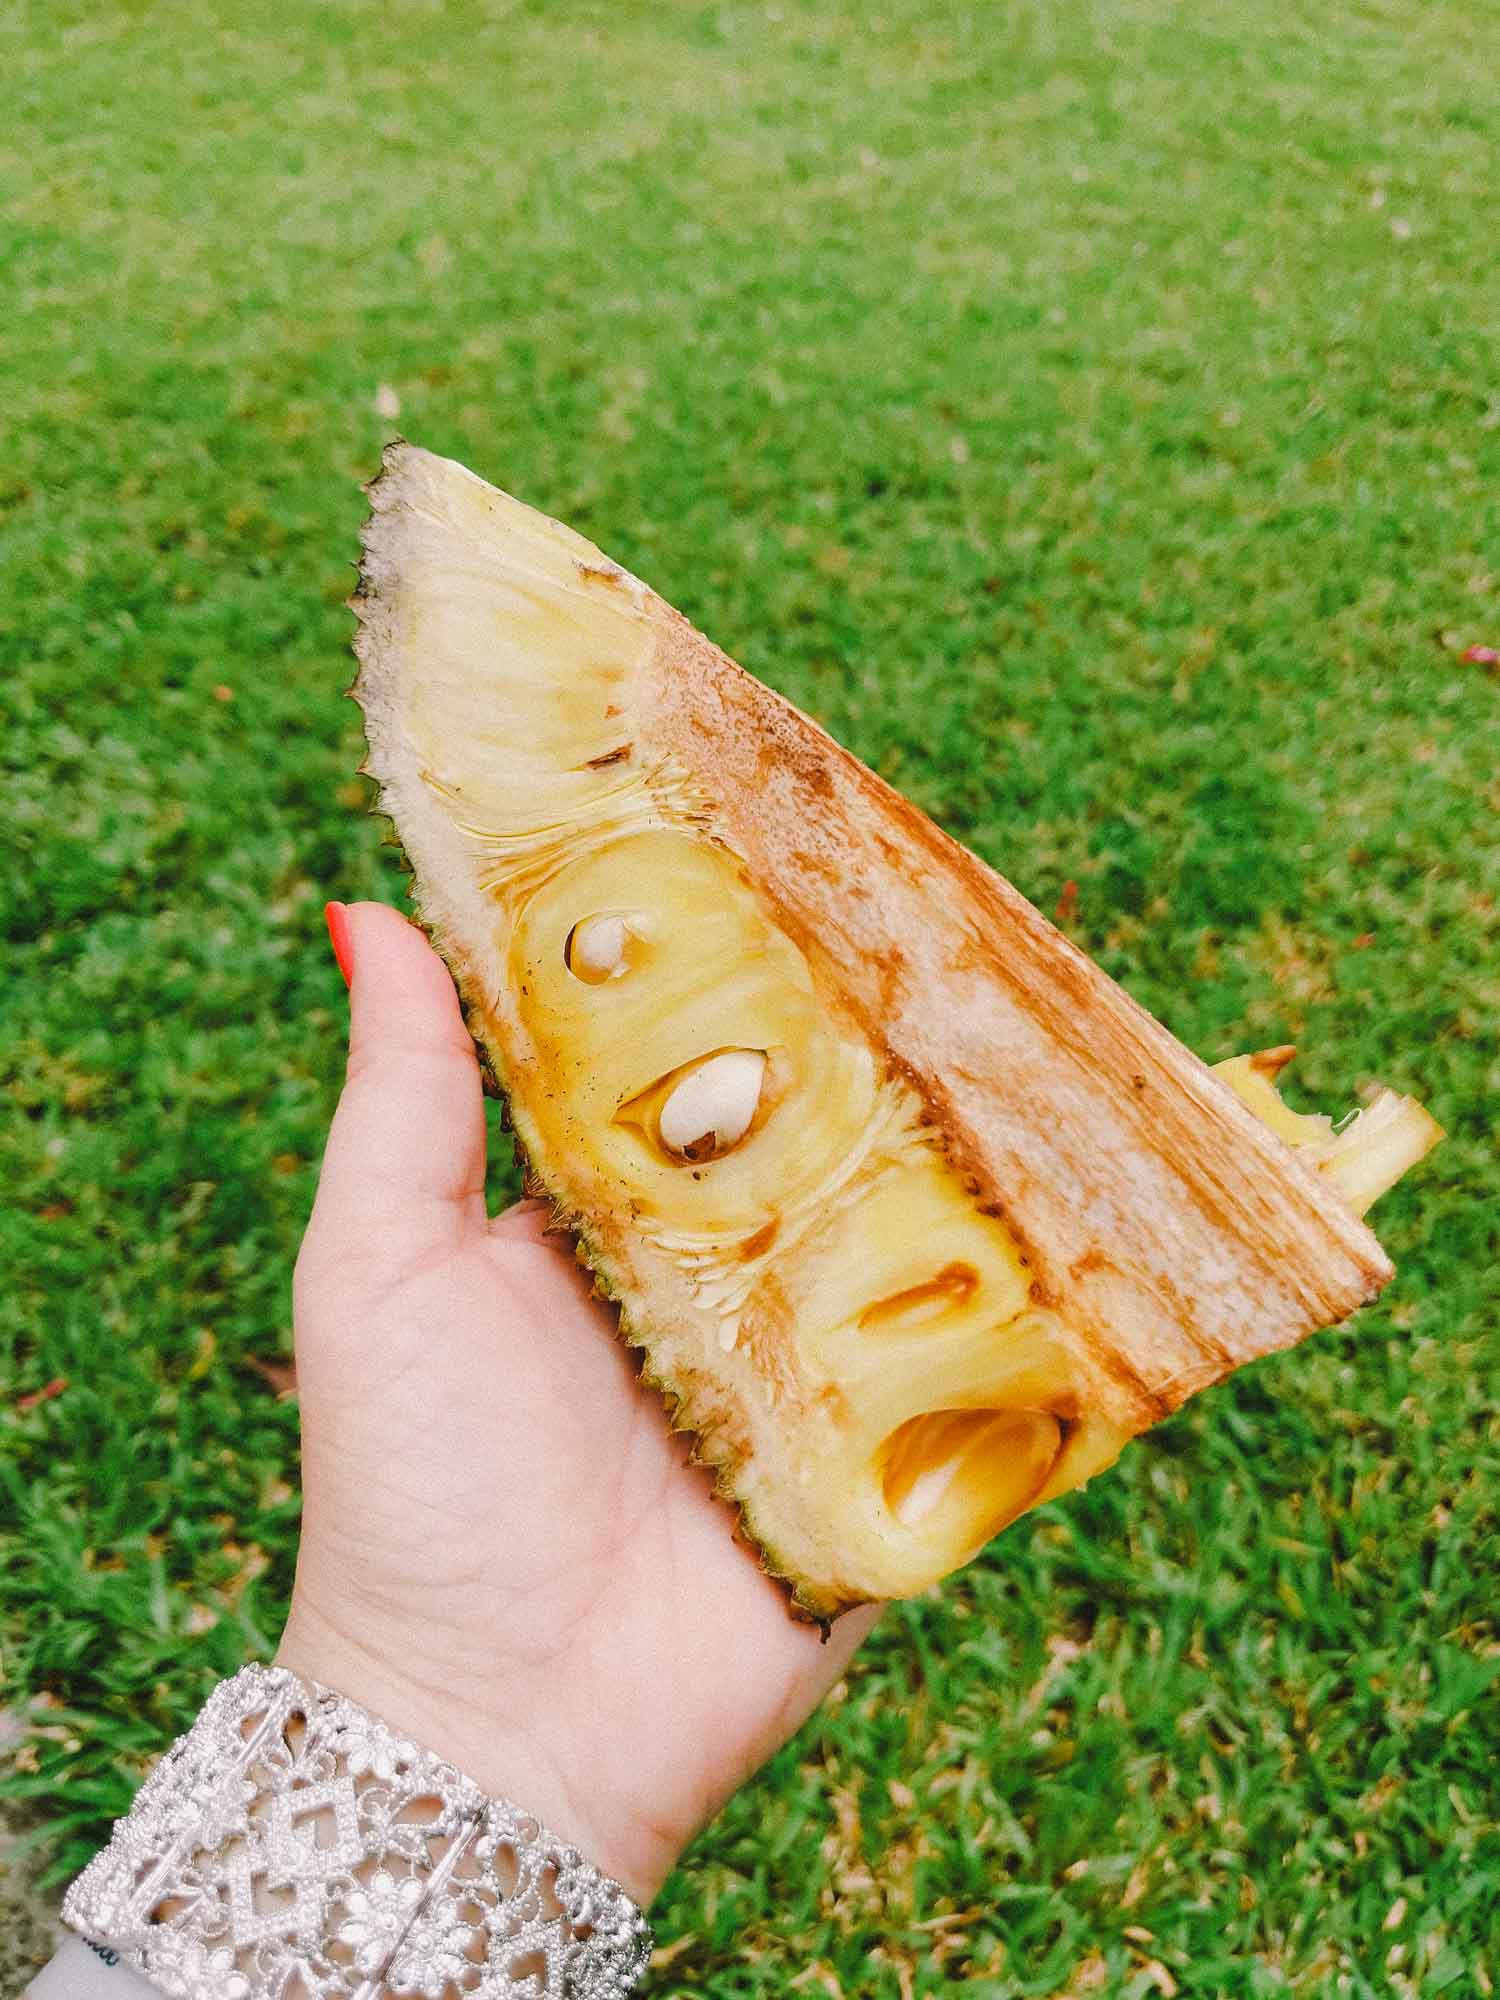 Section of Jamaican jackfruit in a hand